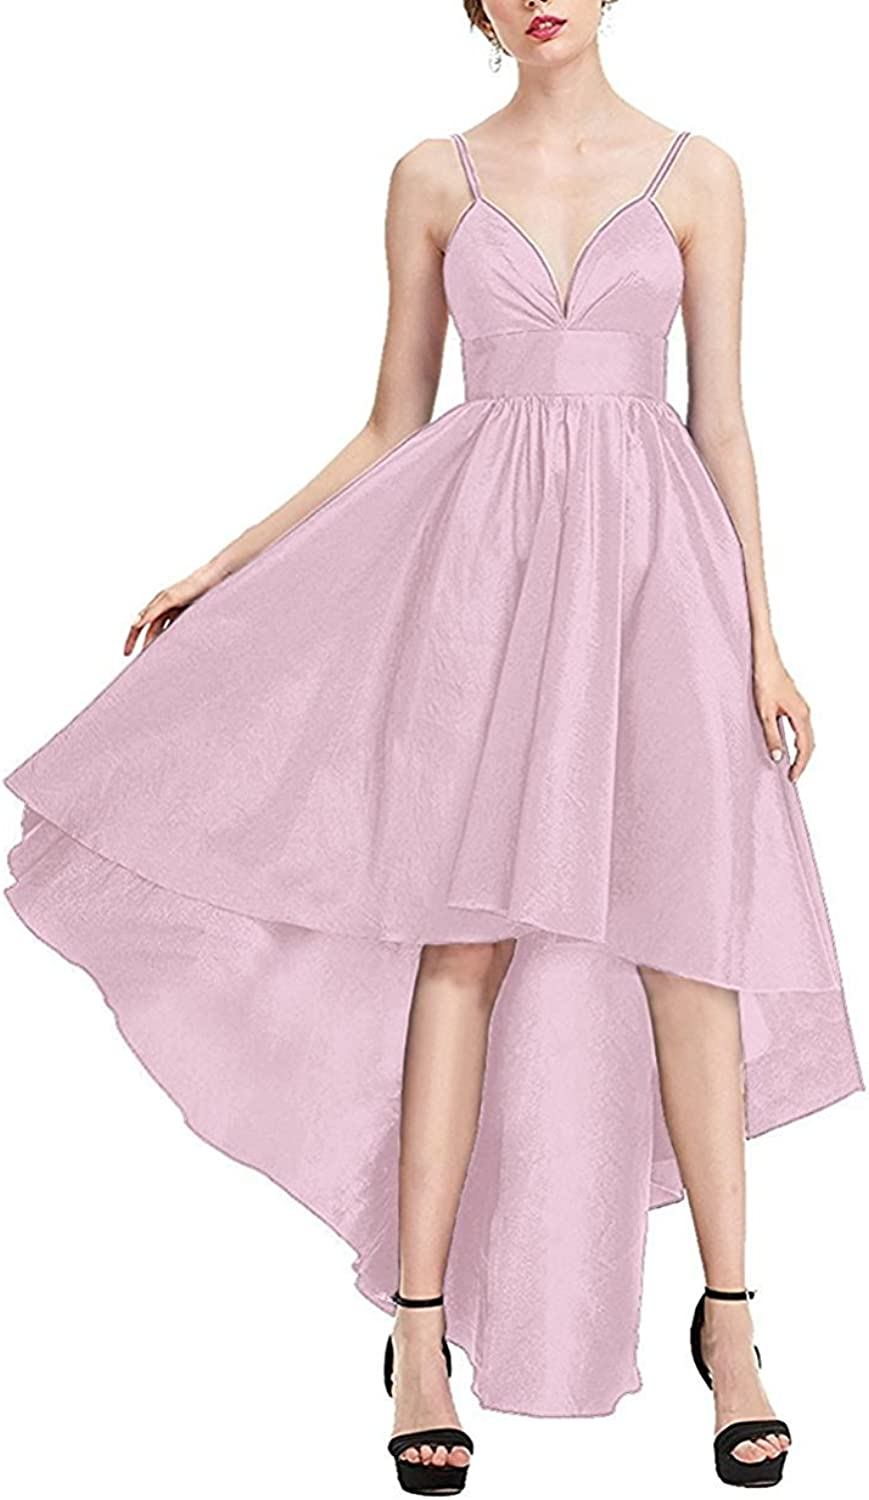 JINGDRESS Sexy V Neck Spaghetti Straps Satin Prom Gowns High Low Backless Cocktail